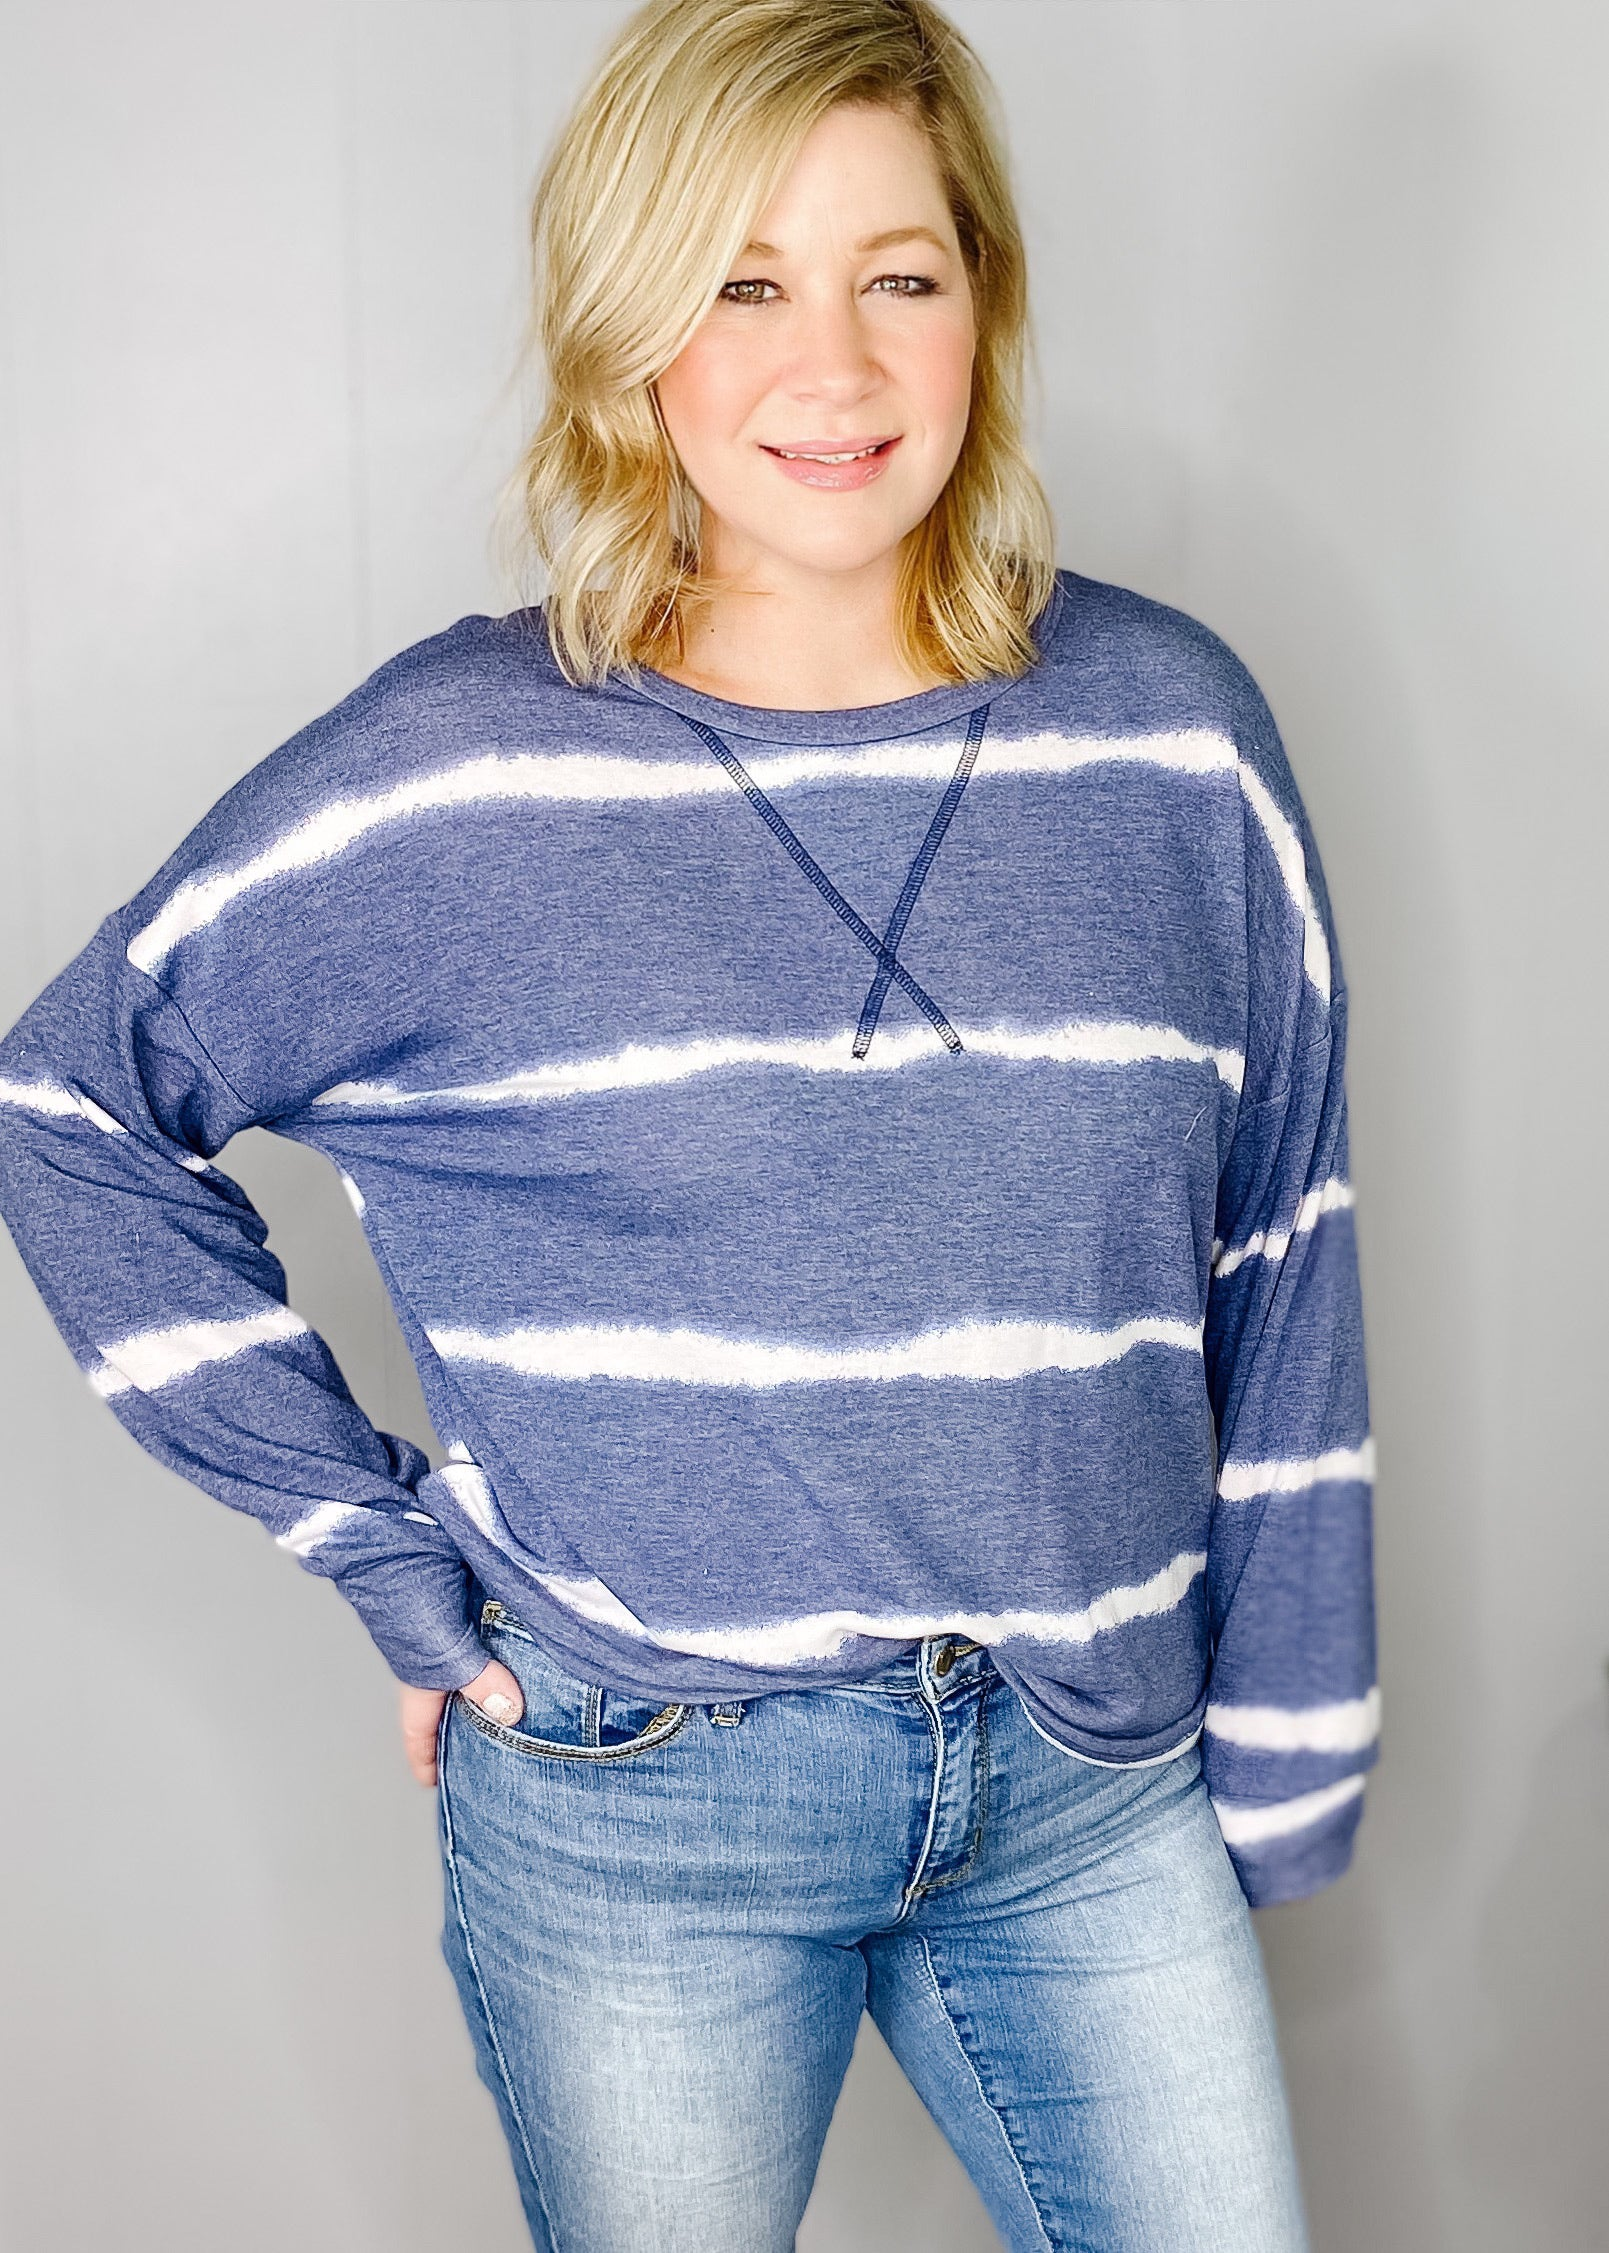 Navy Top with white tie dye stripes. Long sleeves, medium weight and stitch detail. Available in small, medium, large and x large at L.E & CO BOUTIQUE.     f